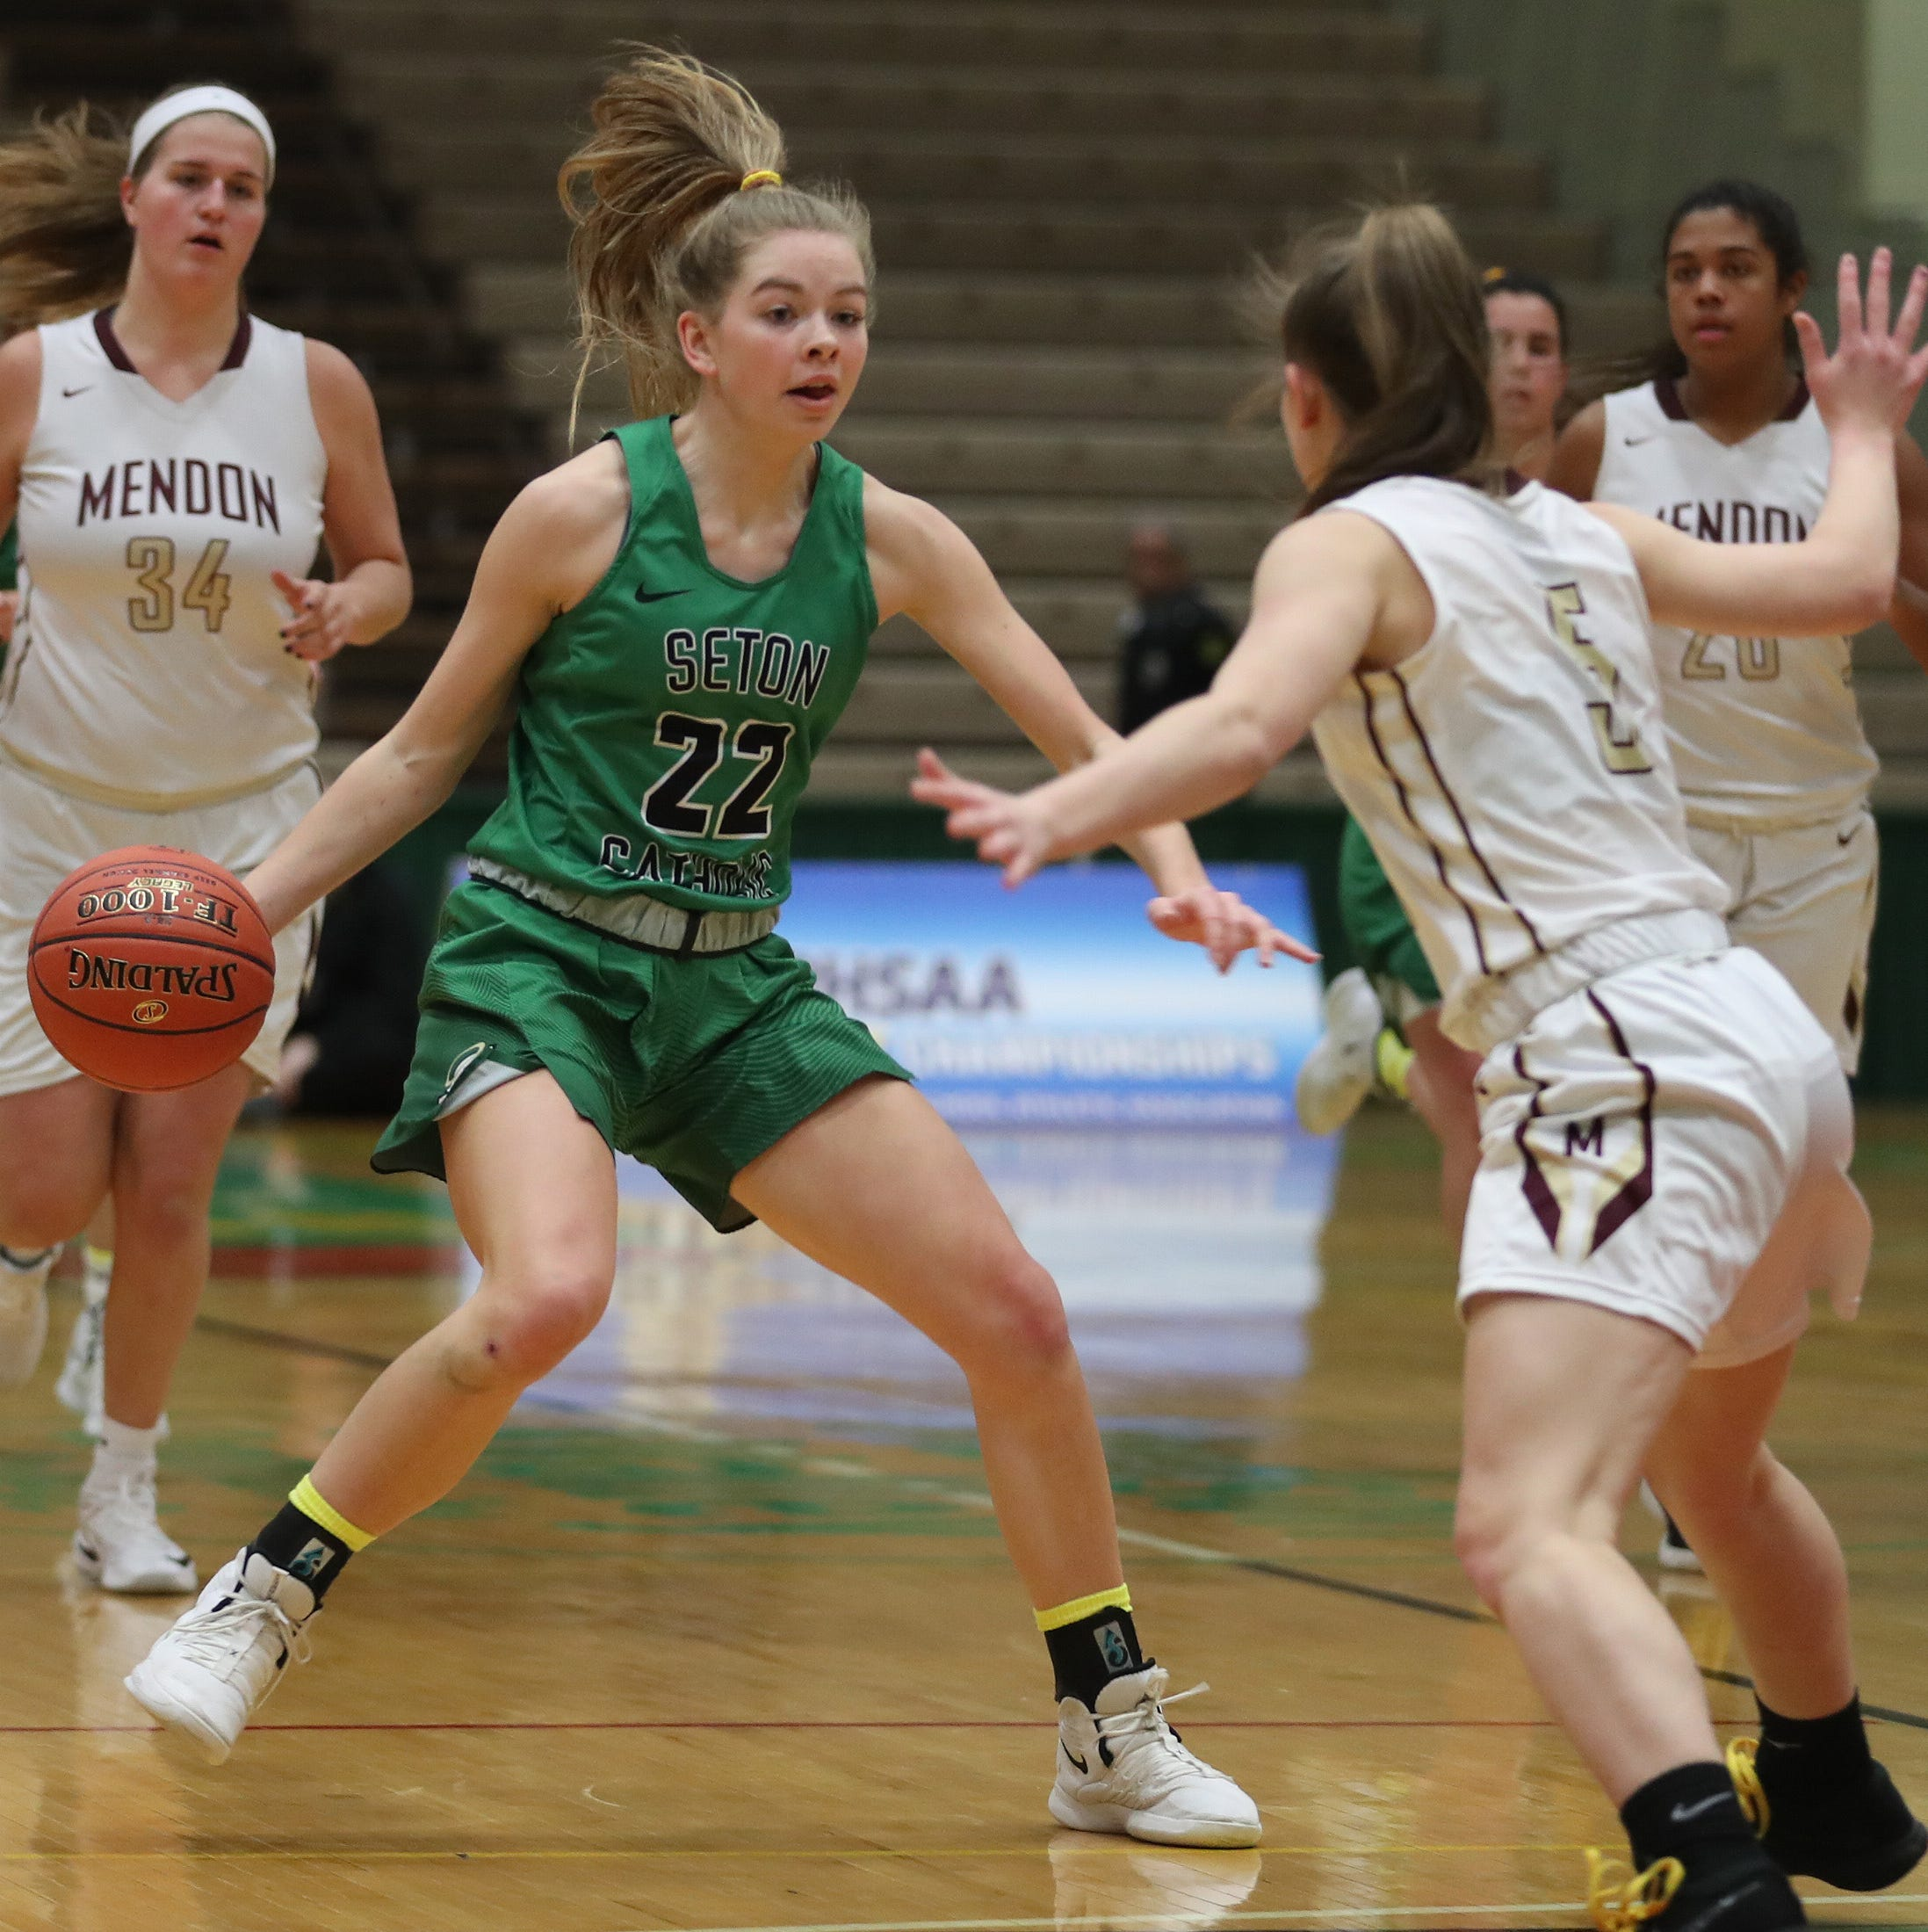 Girls Basketball: Third-quarter struggles cost Seton Catholic Central in Class A final